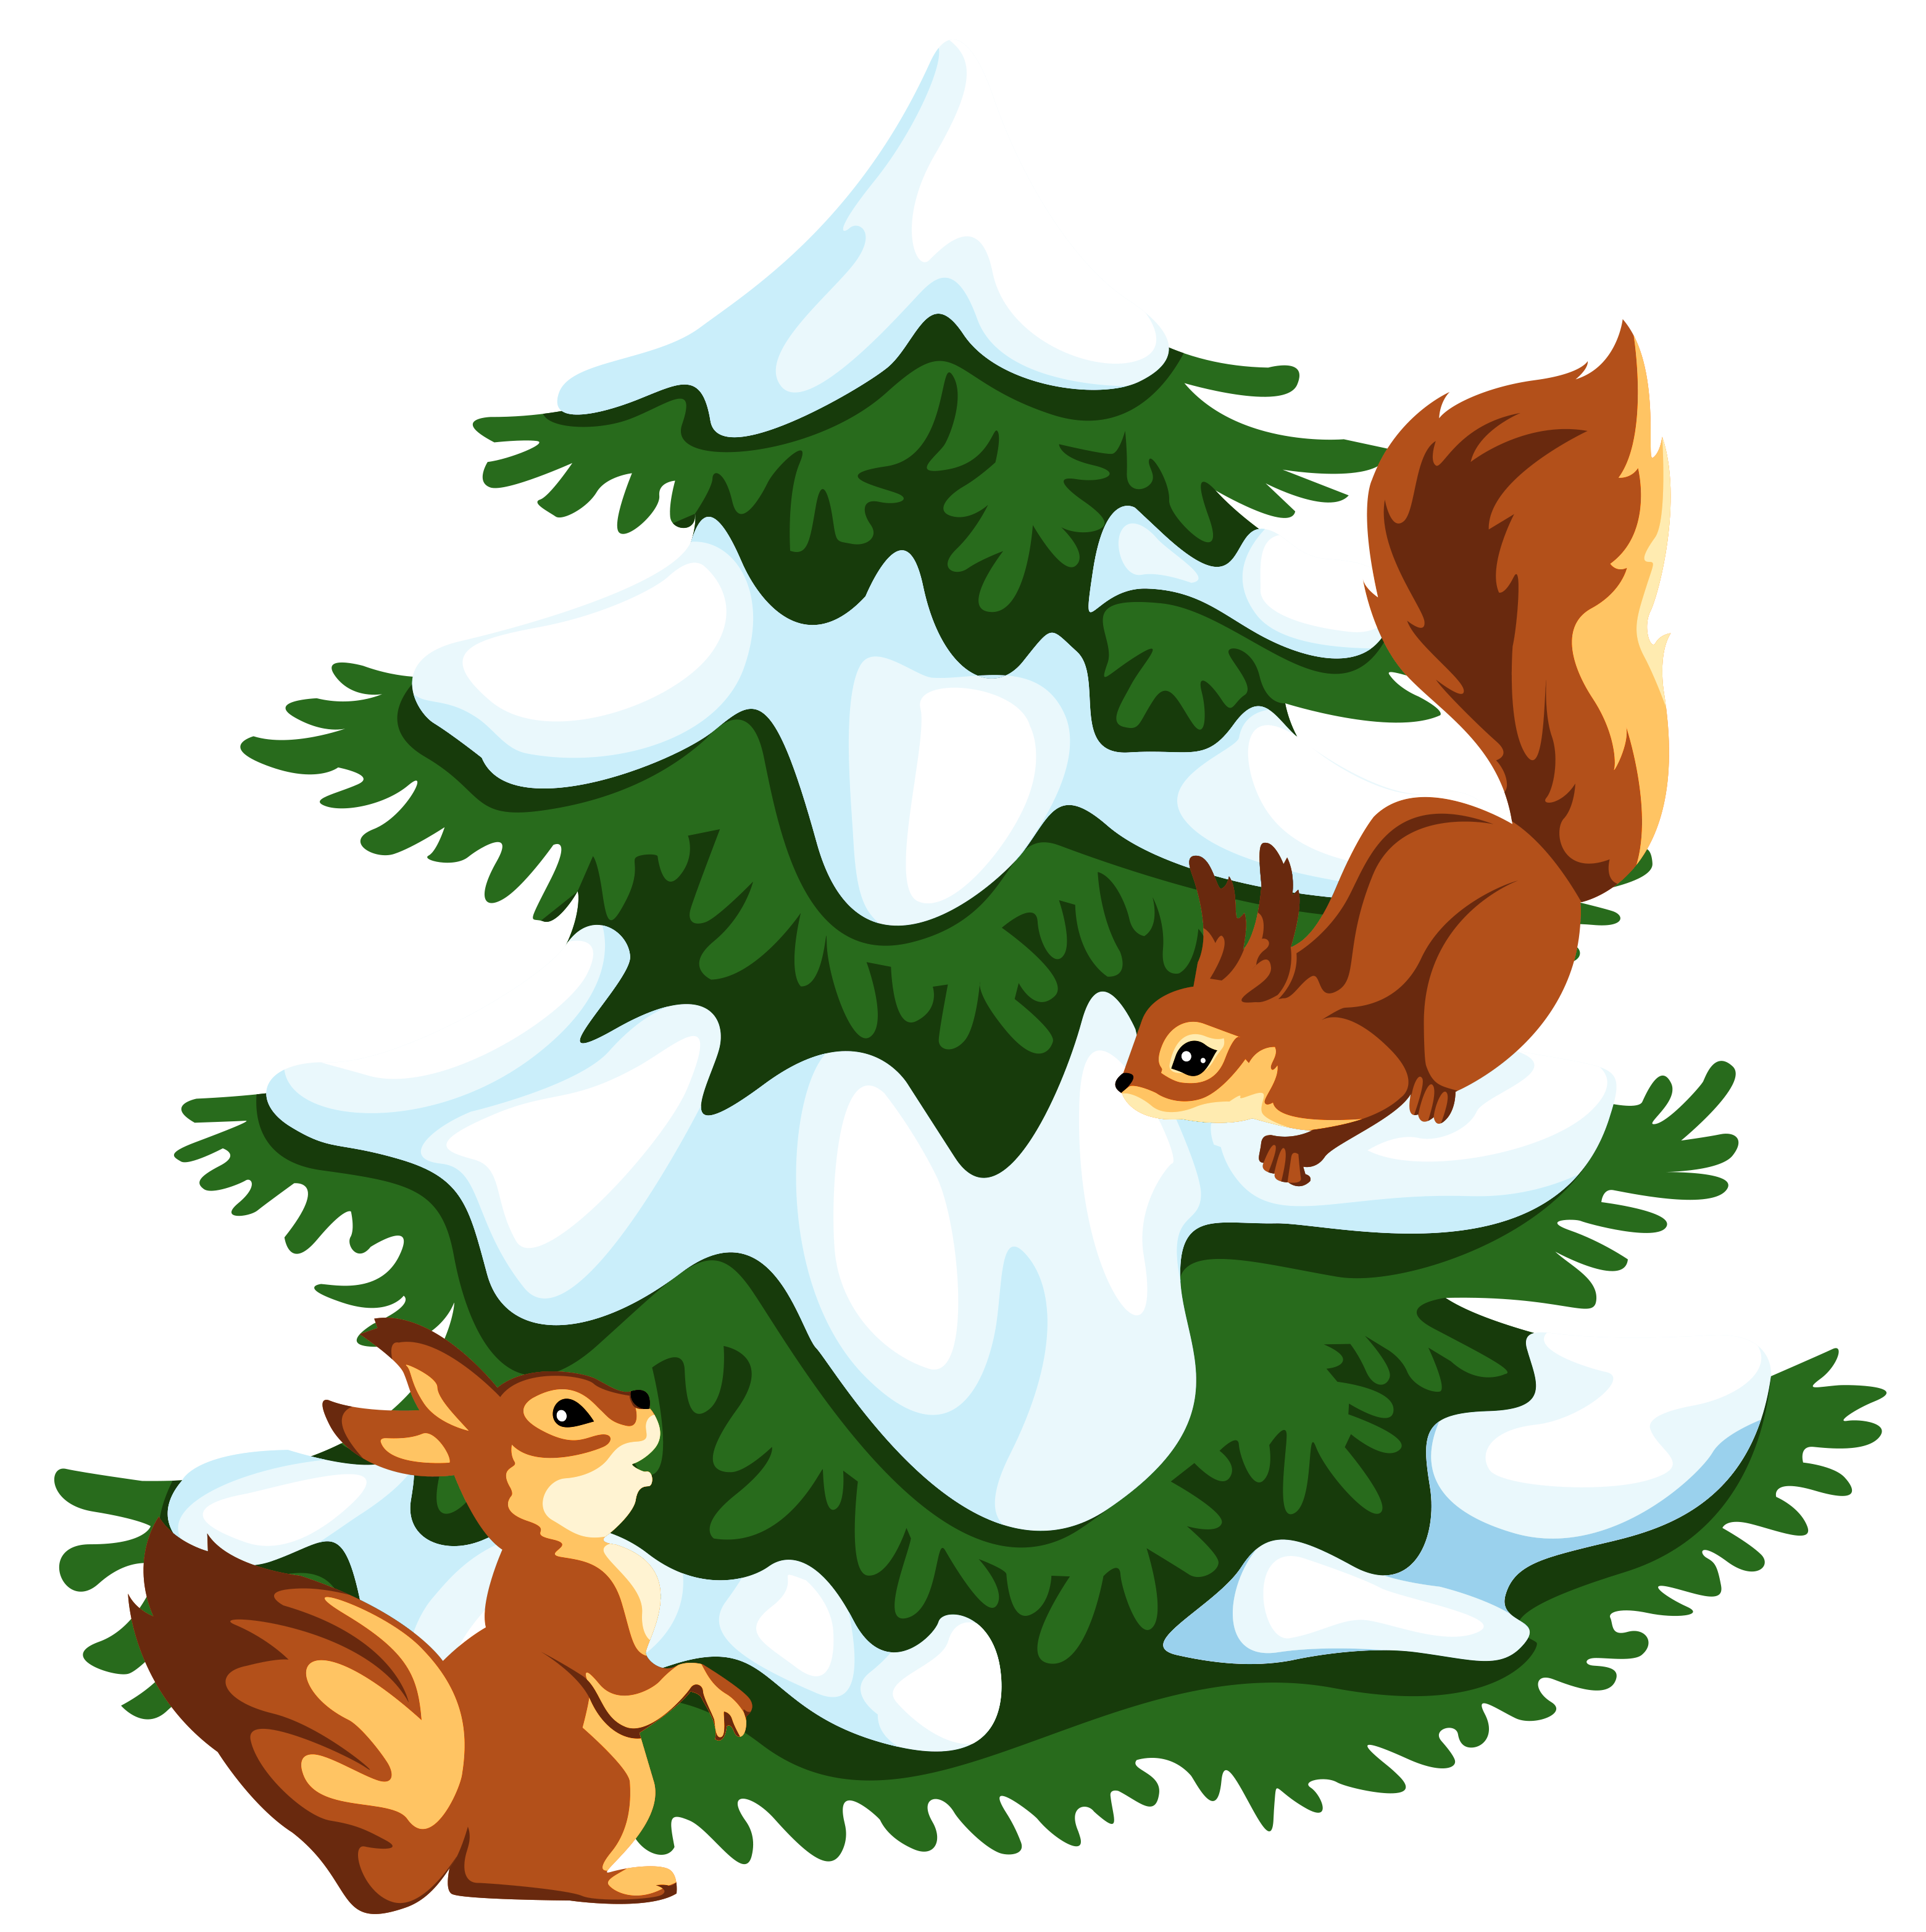 Snowy tree clipart picture royalty free download Transparent Snowy Tree with Squirrels PNG Clipart | Gallery ... picture royalty free download